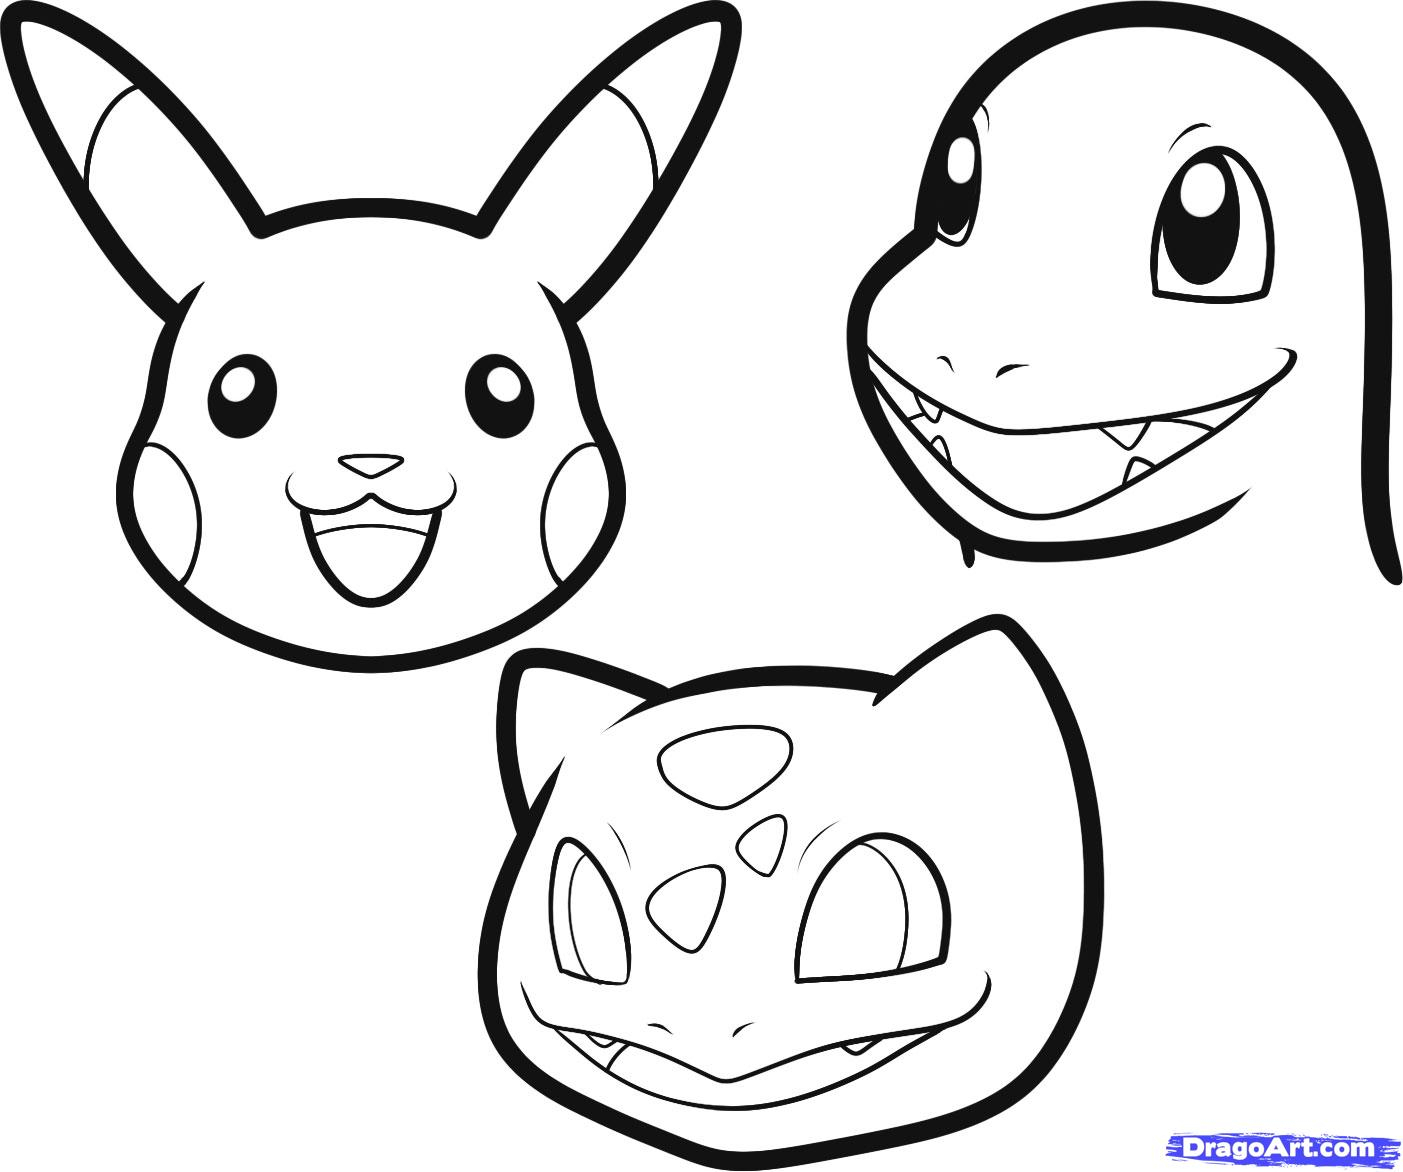 1403x1172 Basic Drawing For Beginners How To Draw Piplup From Pokemon